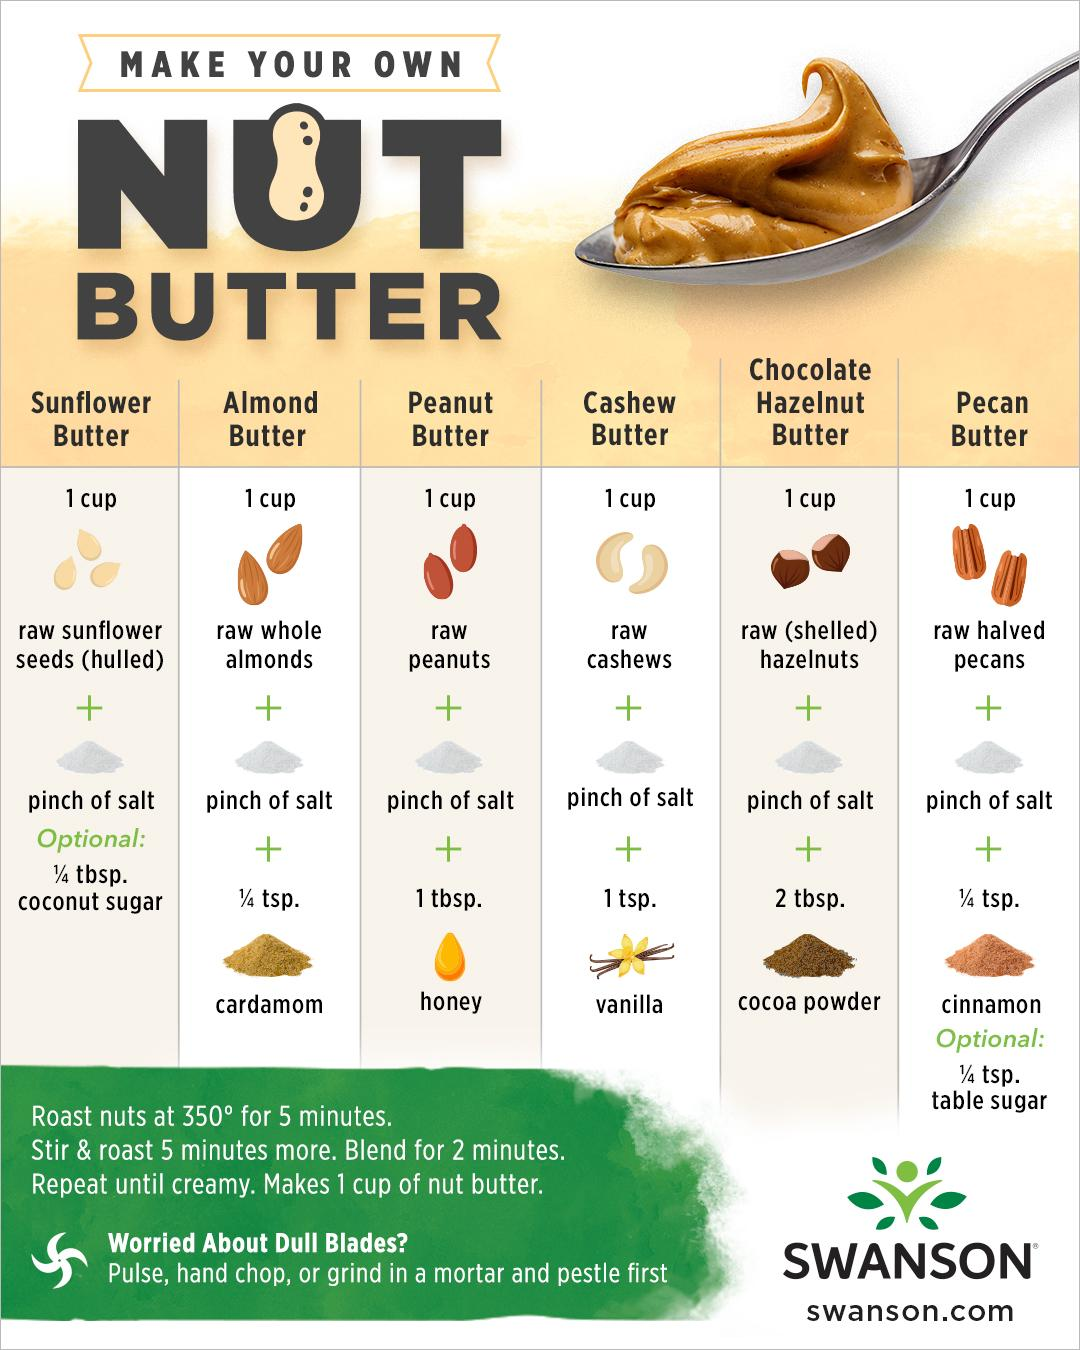 Image showing a spoon of peanut butter along with recipes for different nut butters